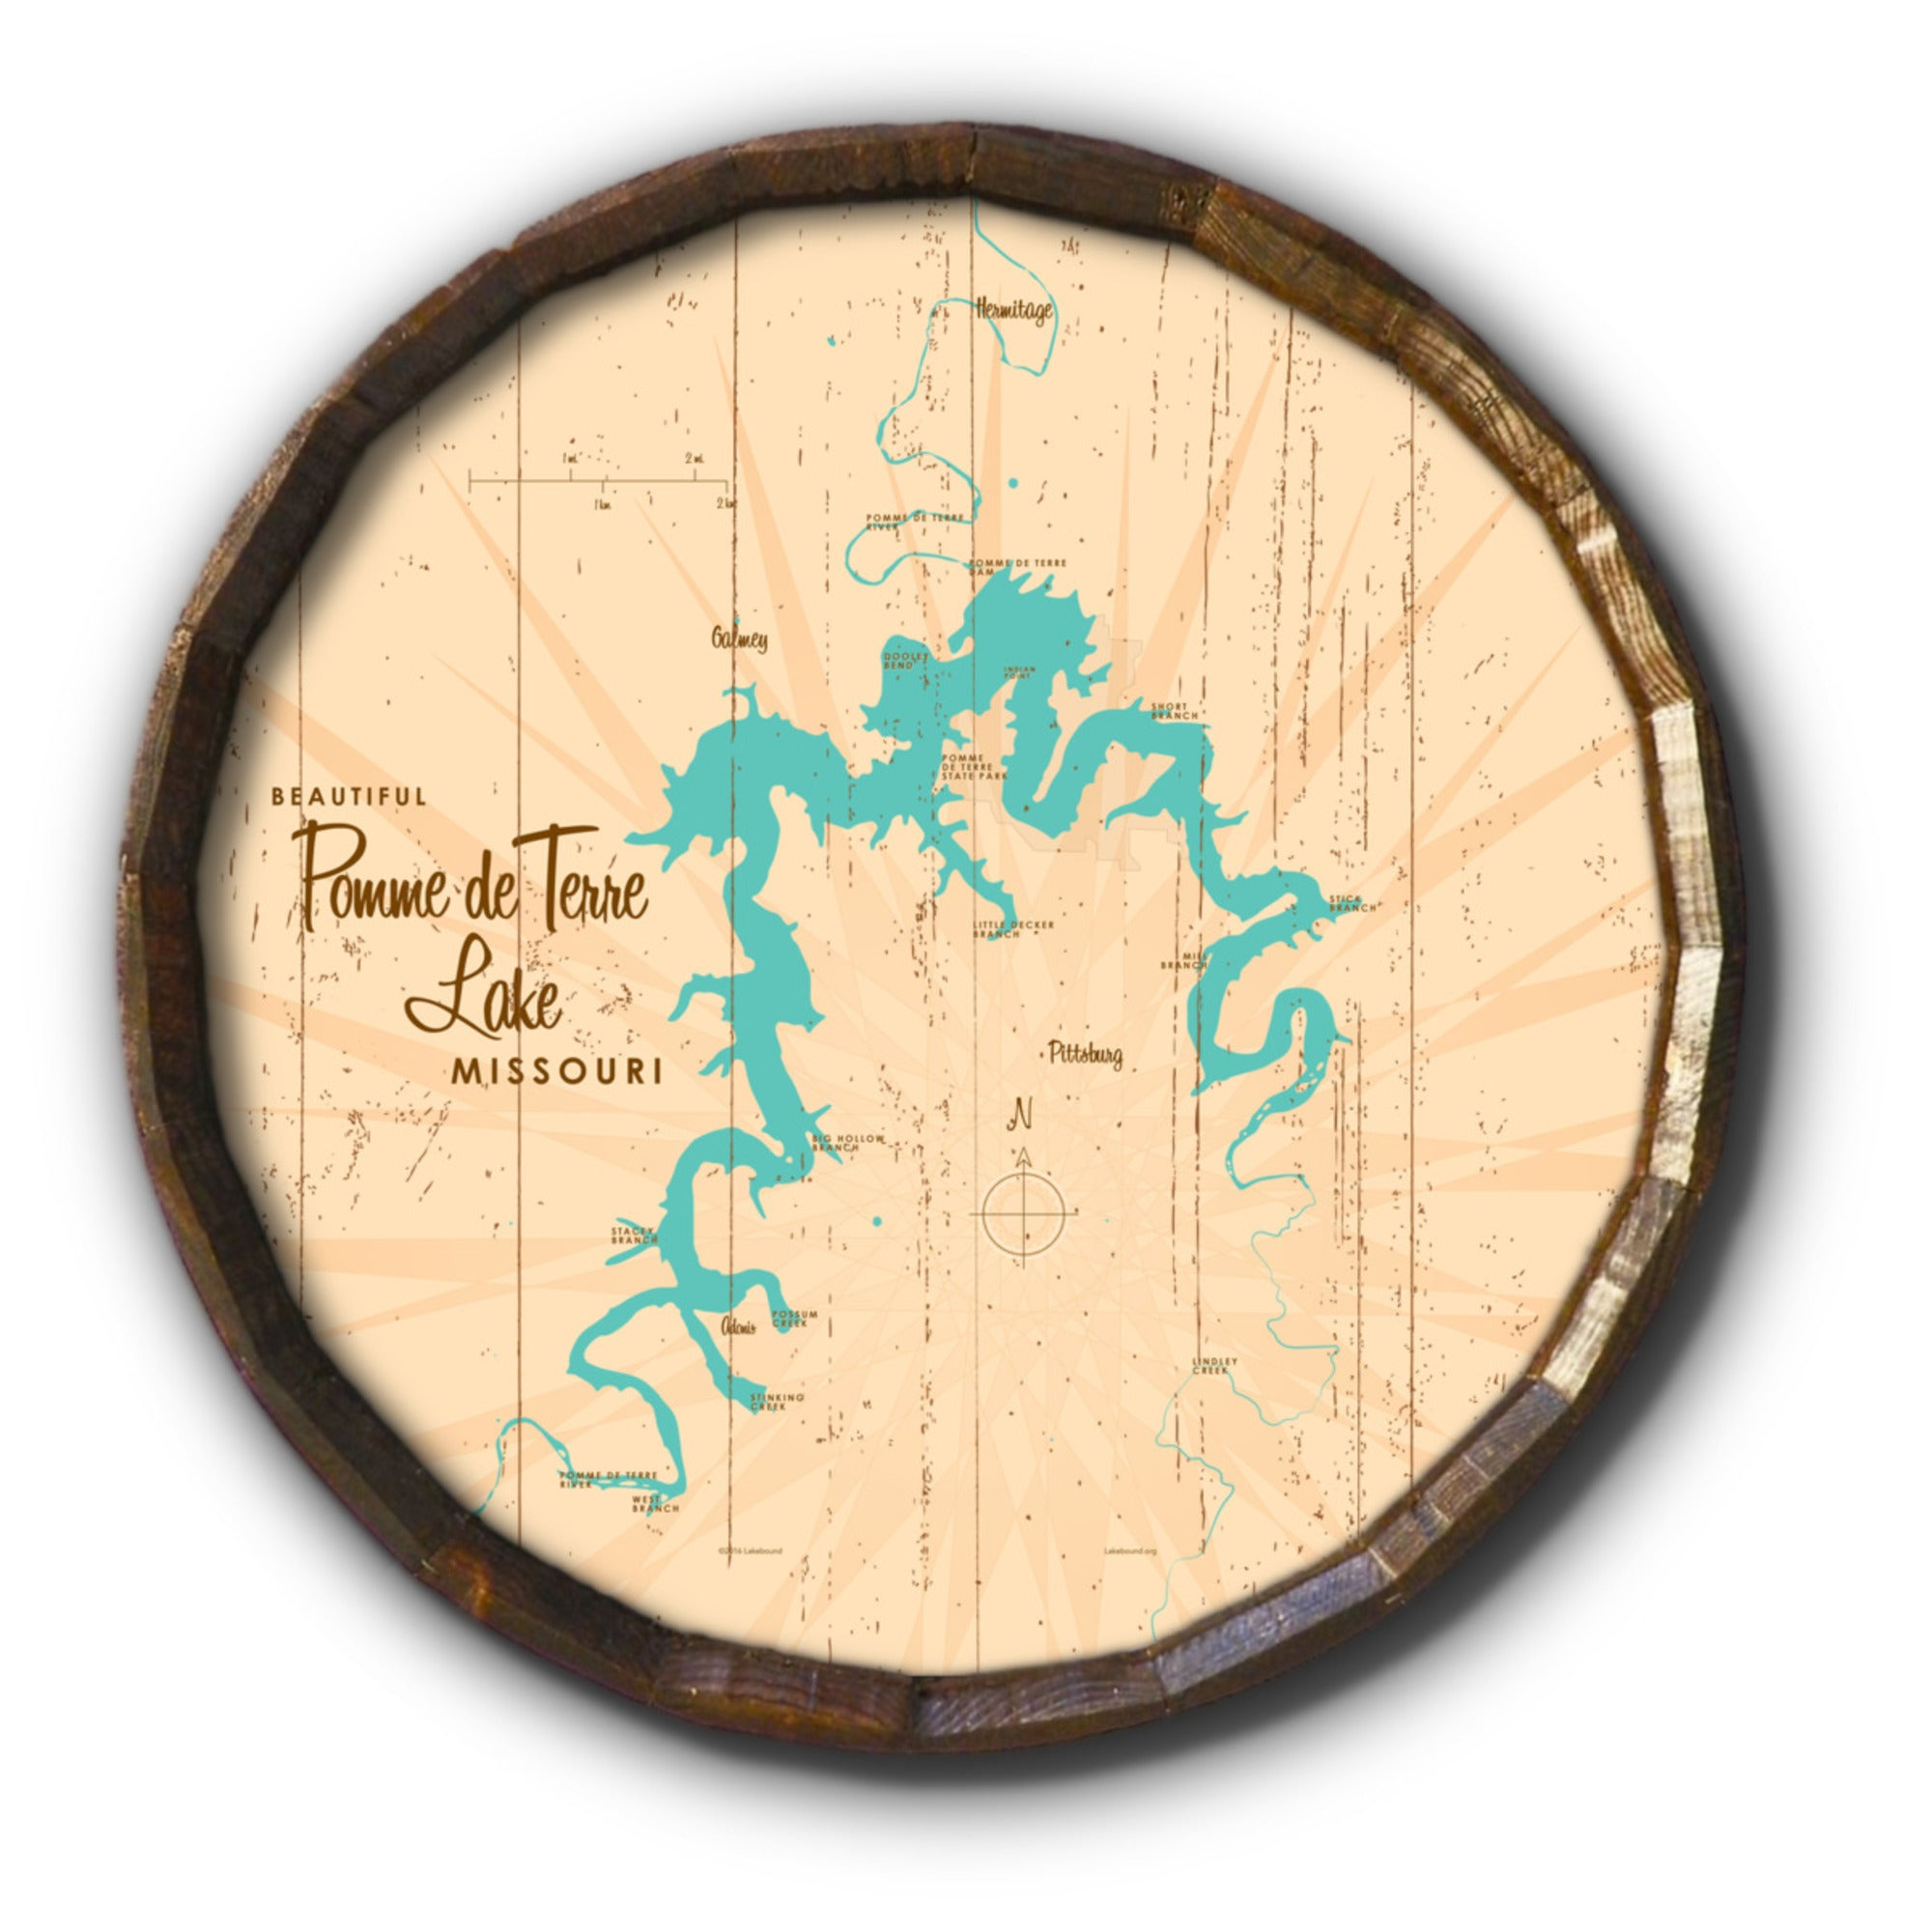 Pomme de Terre Lake Missouri, Rustic Barrel End Map Art